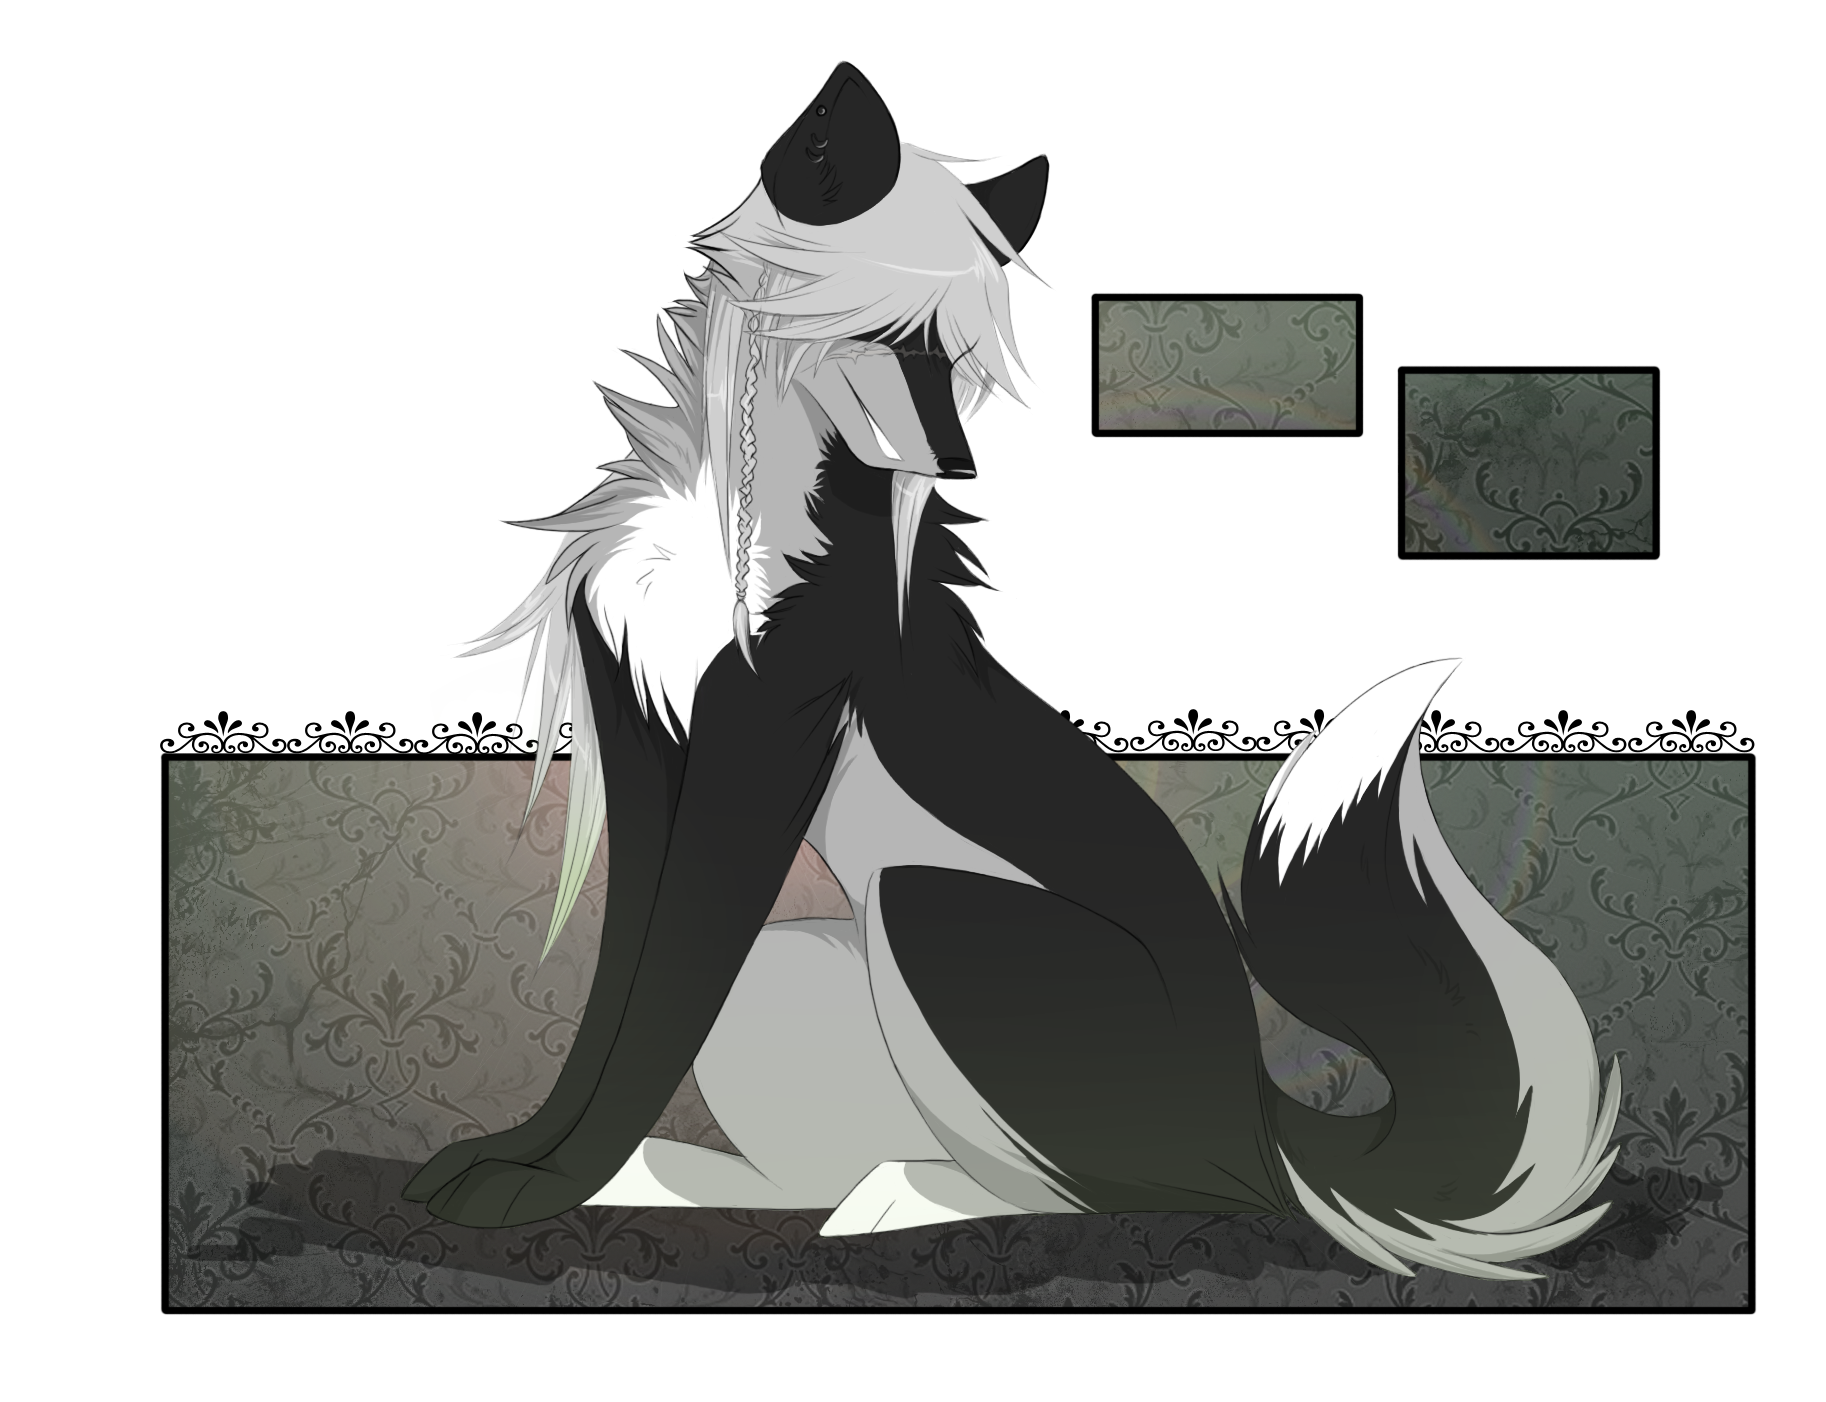 png free Undertaker drawing. Wolf by cristal on